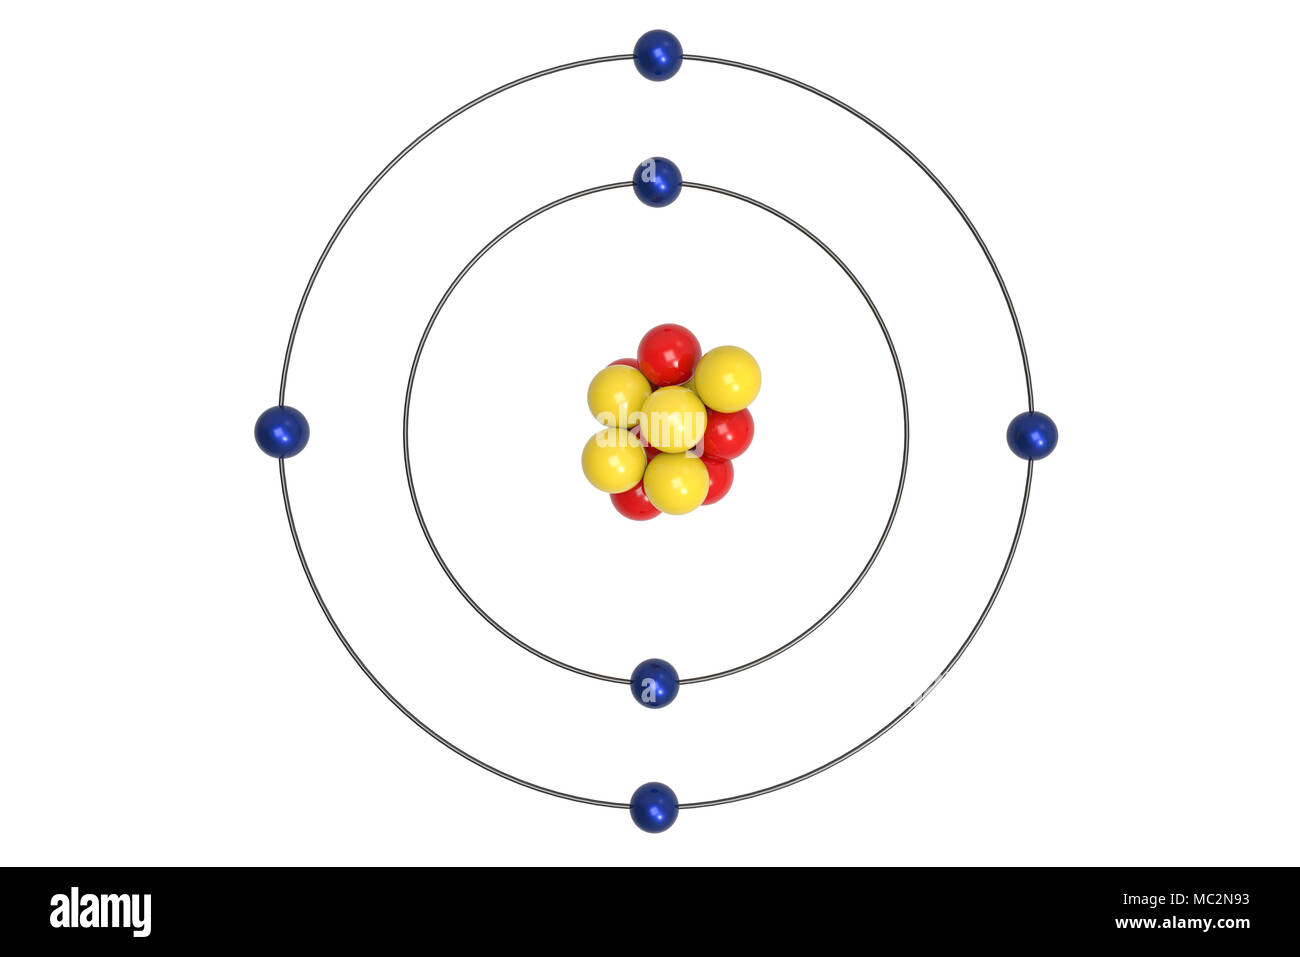 The carbon atom: structure, features and properties 75